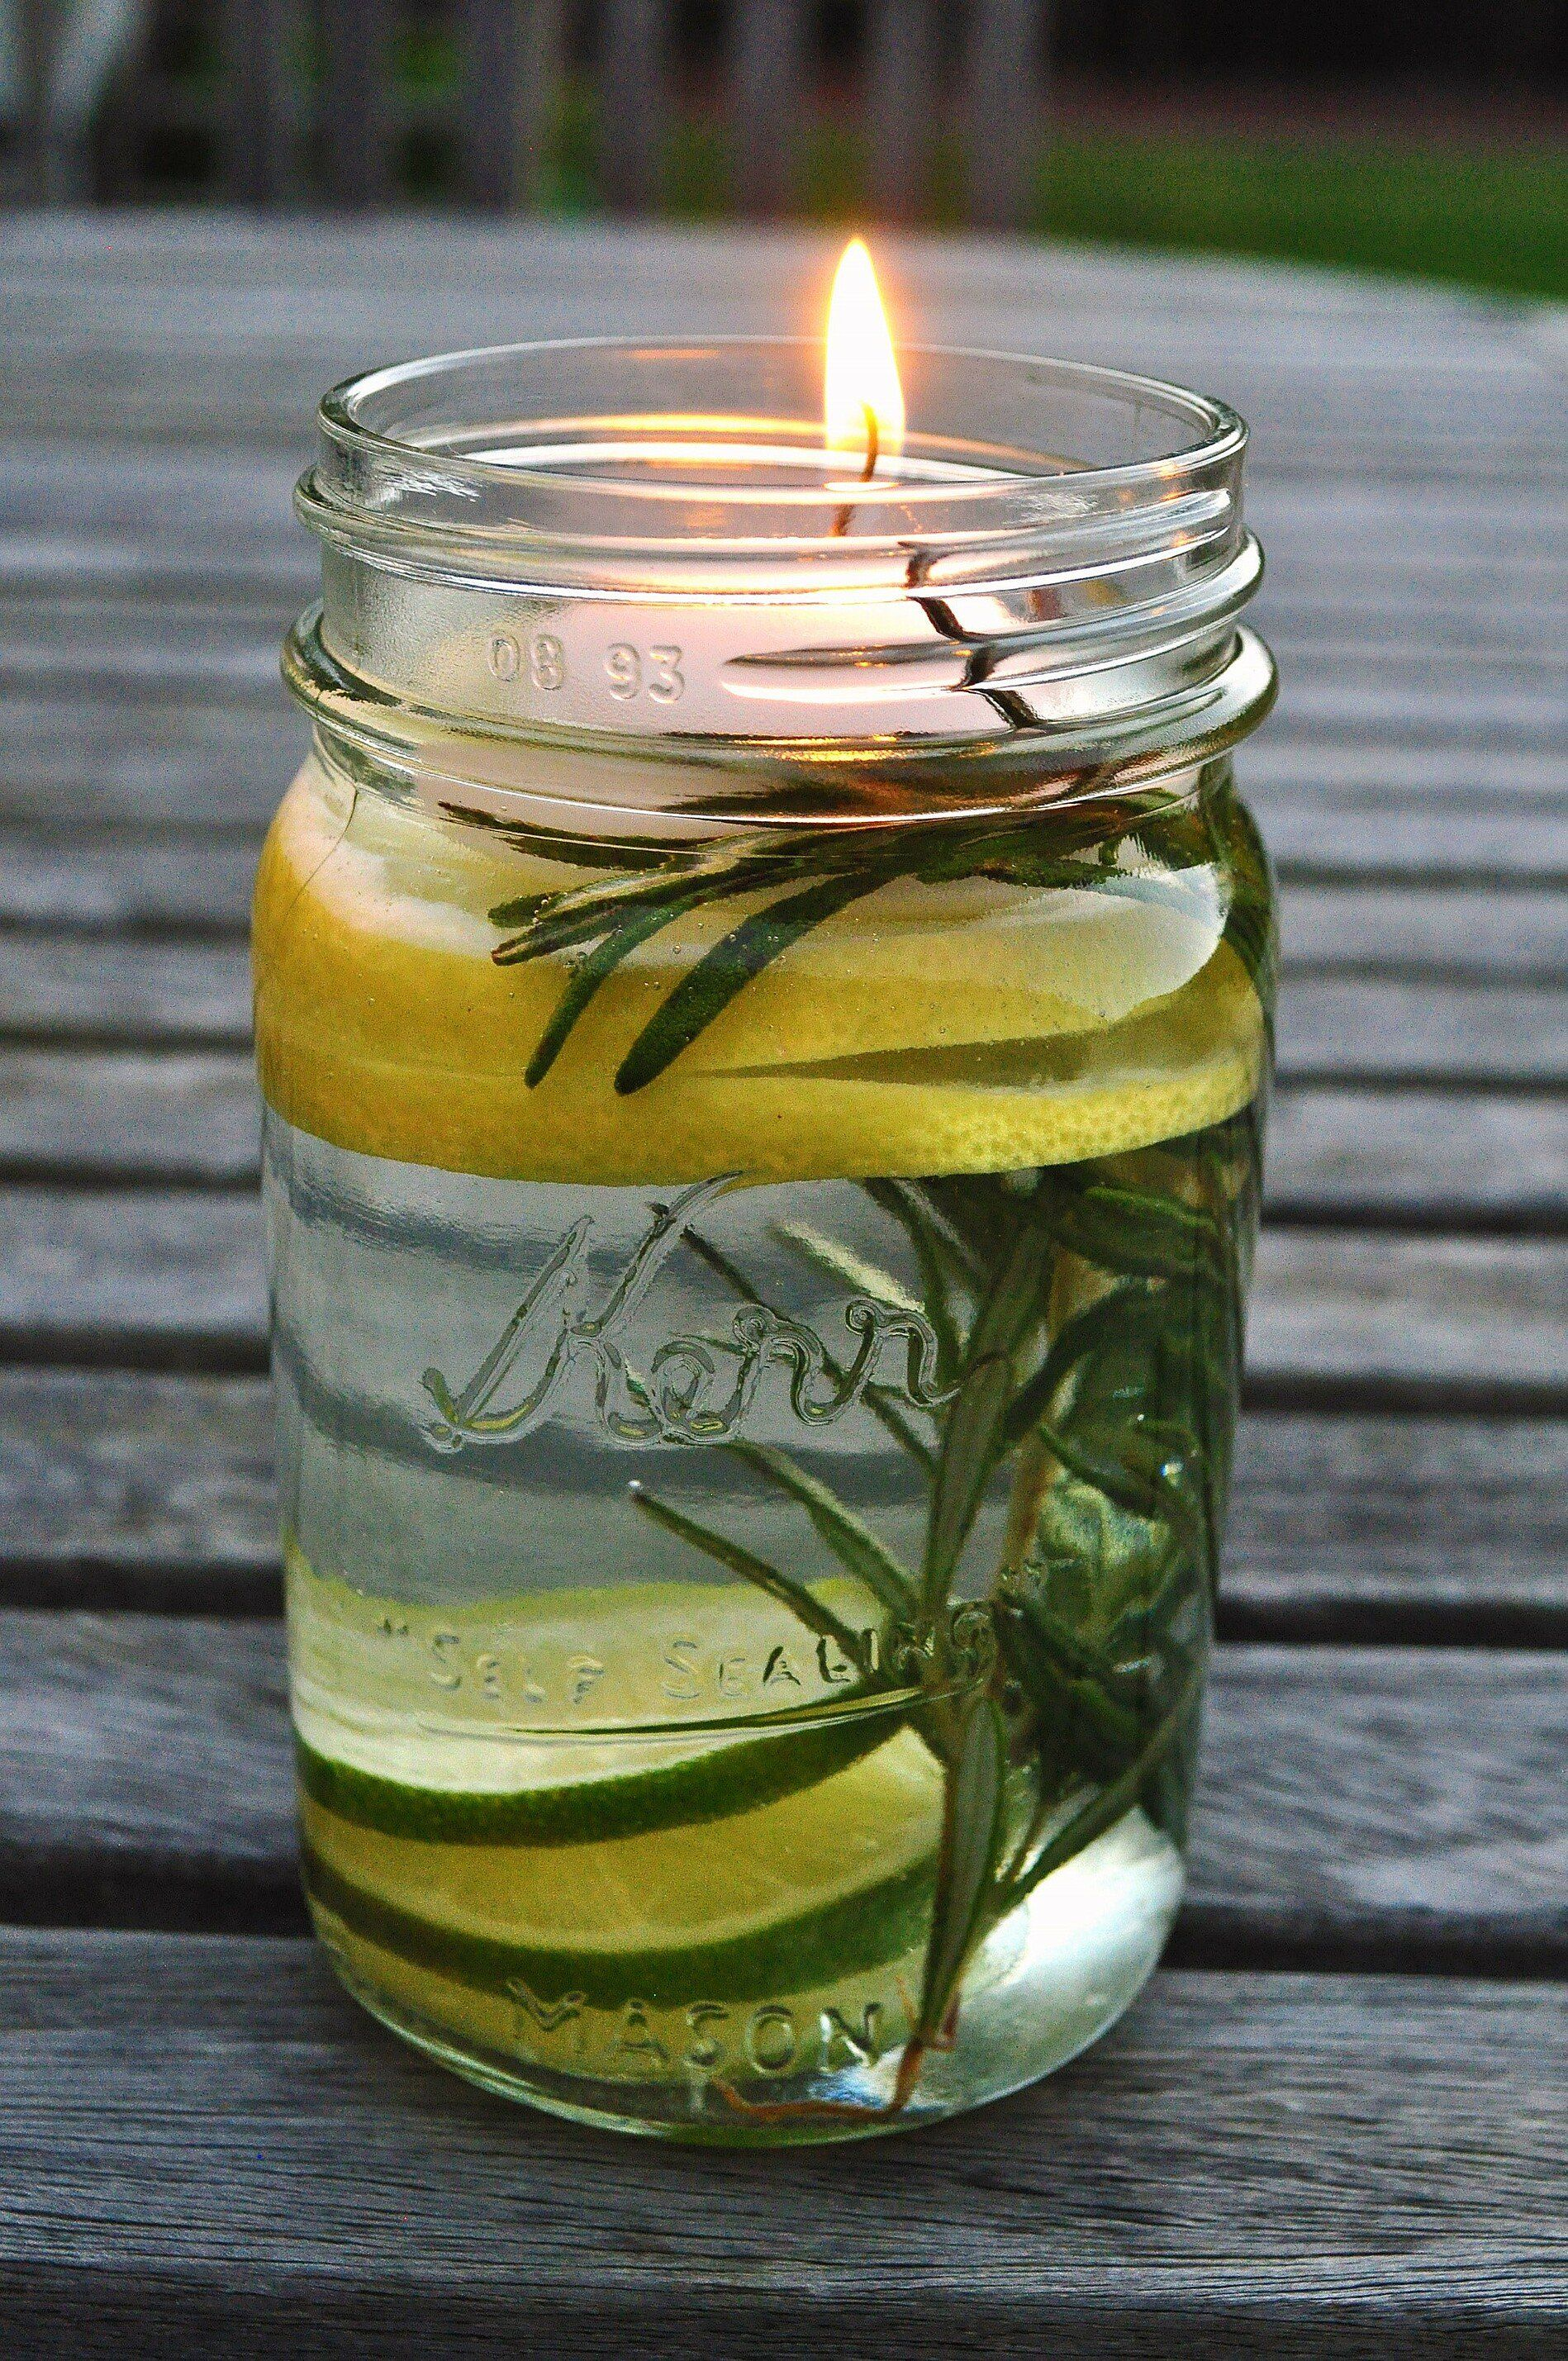 DIY Mosquito Repellent Candle Diy mosquito repellent